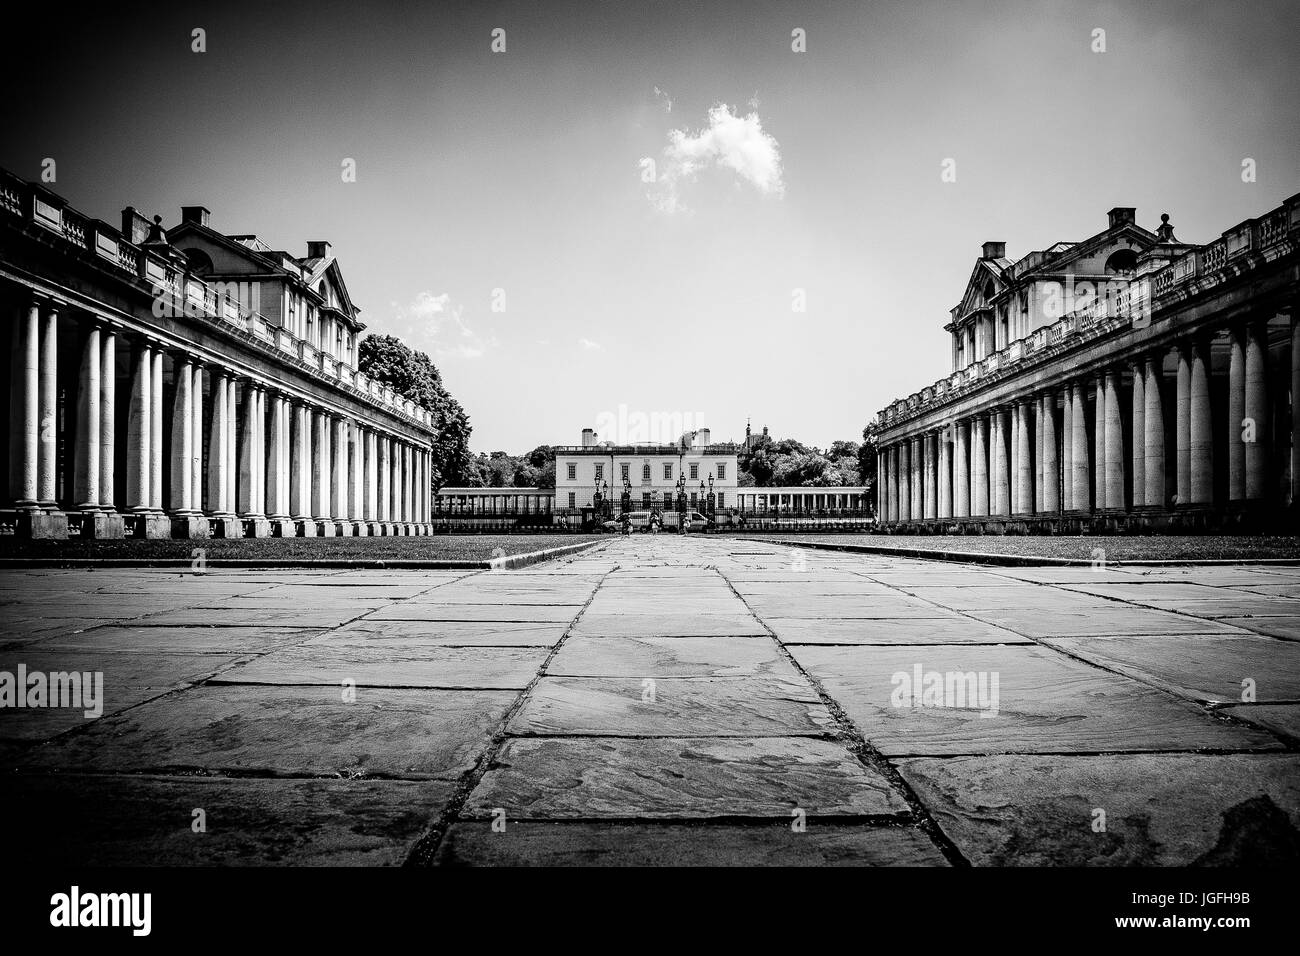 Greenwich College - Stock Image